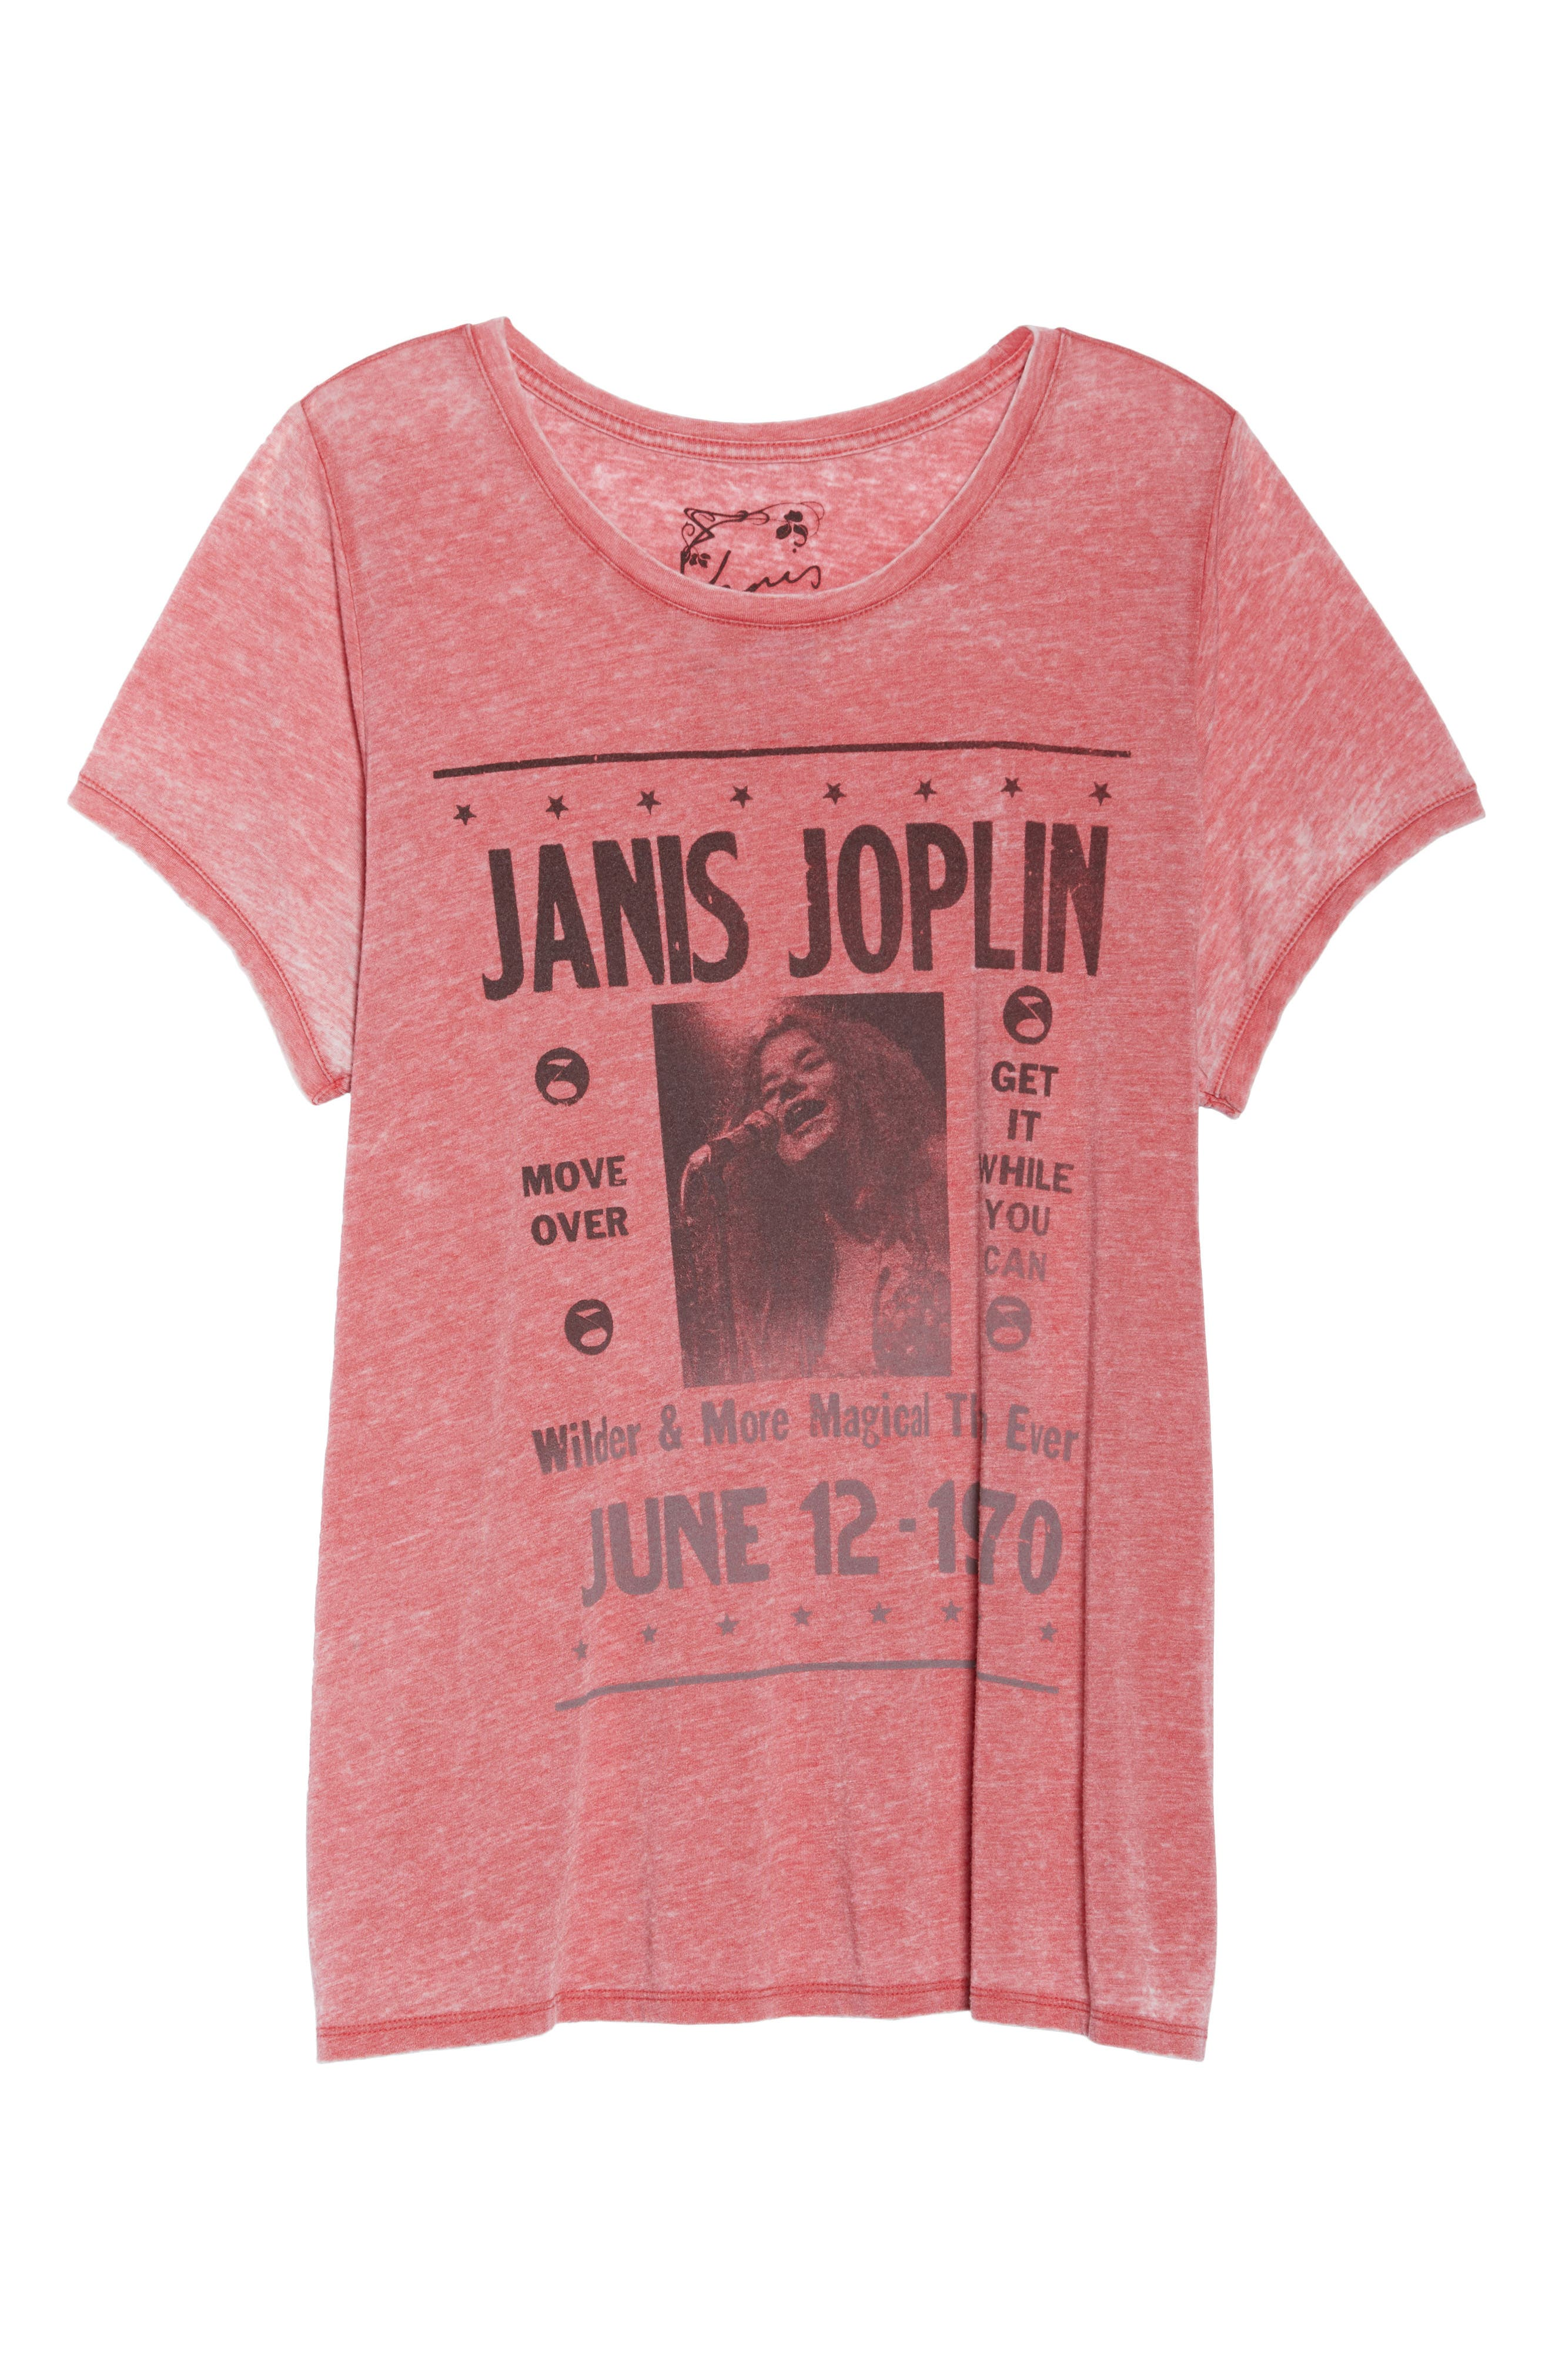 Janis Joplin Tee,                             Alternate thumbnail 7, color,                             640